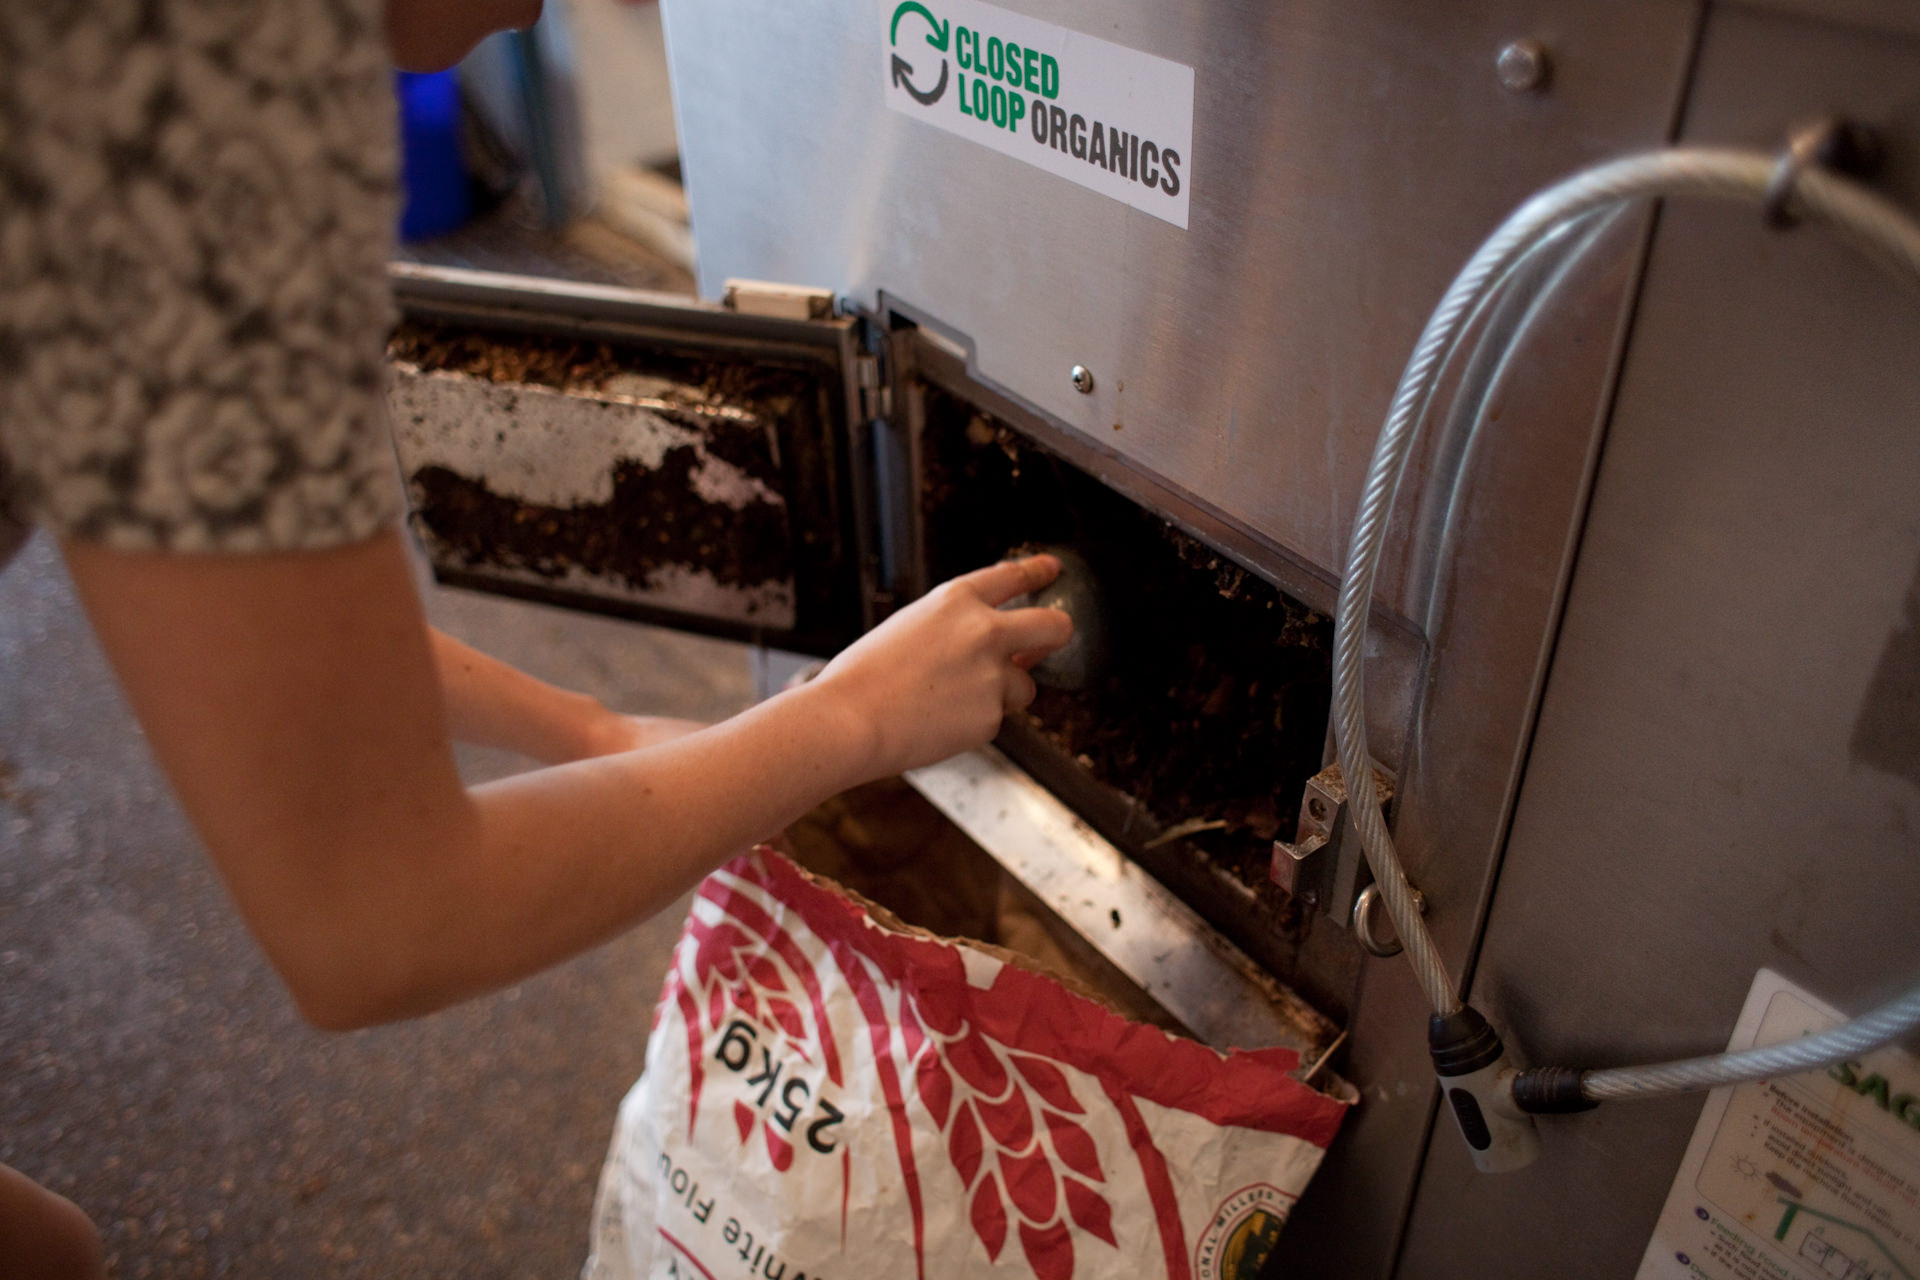 Rebecca Irving bags compost from the composting machine. Once bagged, the compost can be collected for free. Silo has a heated composter; it is an anaerobic digester (no air) and they use an activator to get it going. It is able to convert food waste, paper/wooden cutlery waste to compost in one day. The resulting compost is given away to customers, suppliers and allotment holders.